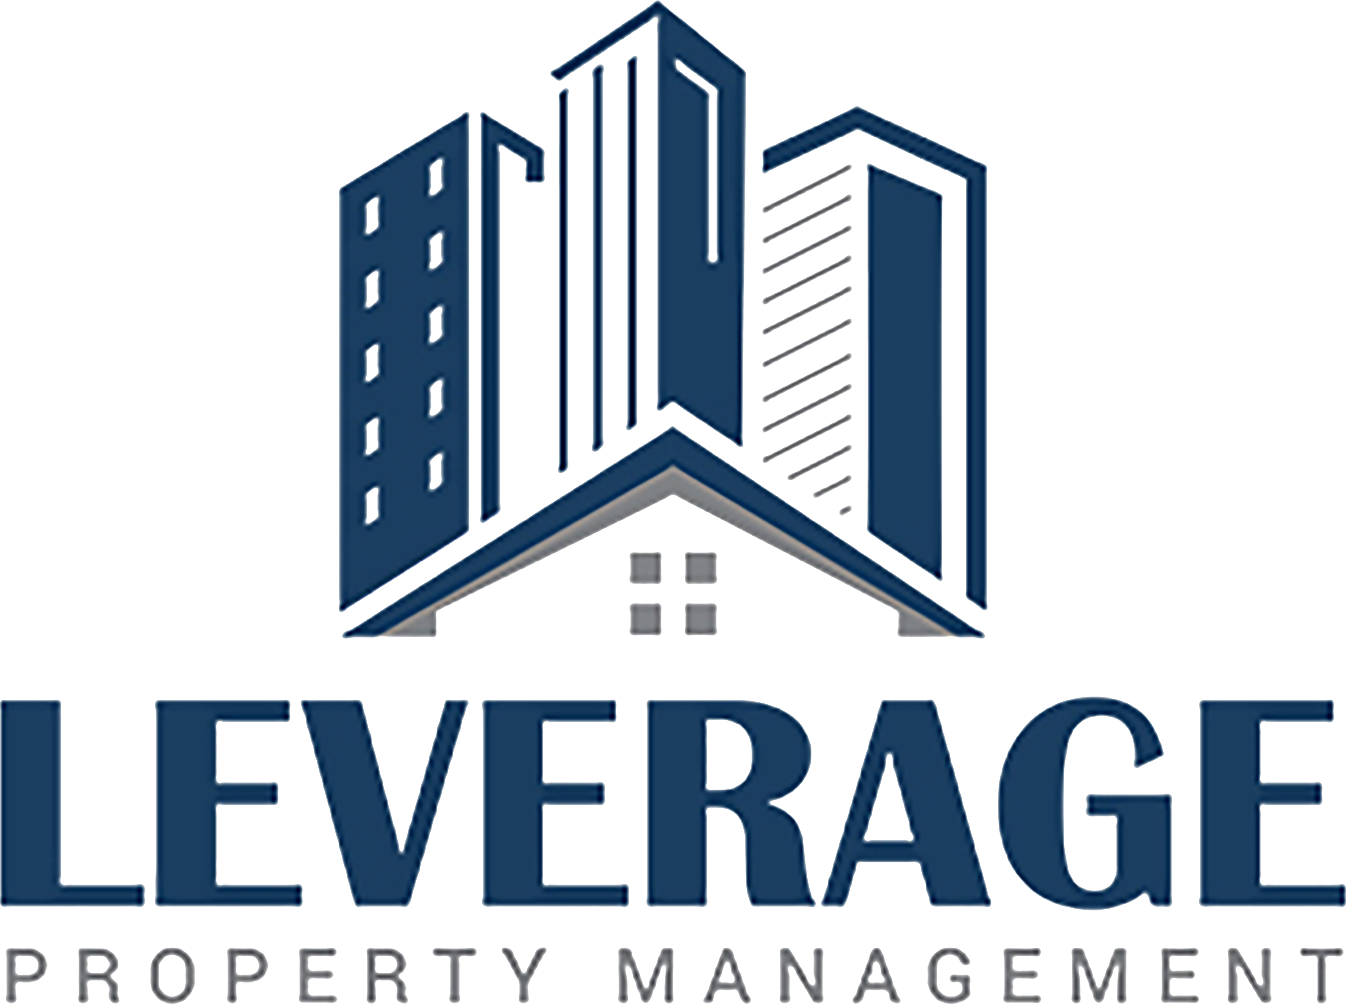 Leverage Property Management